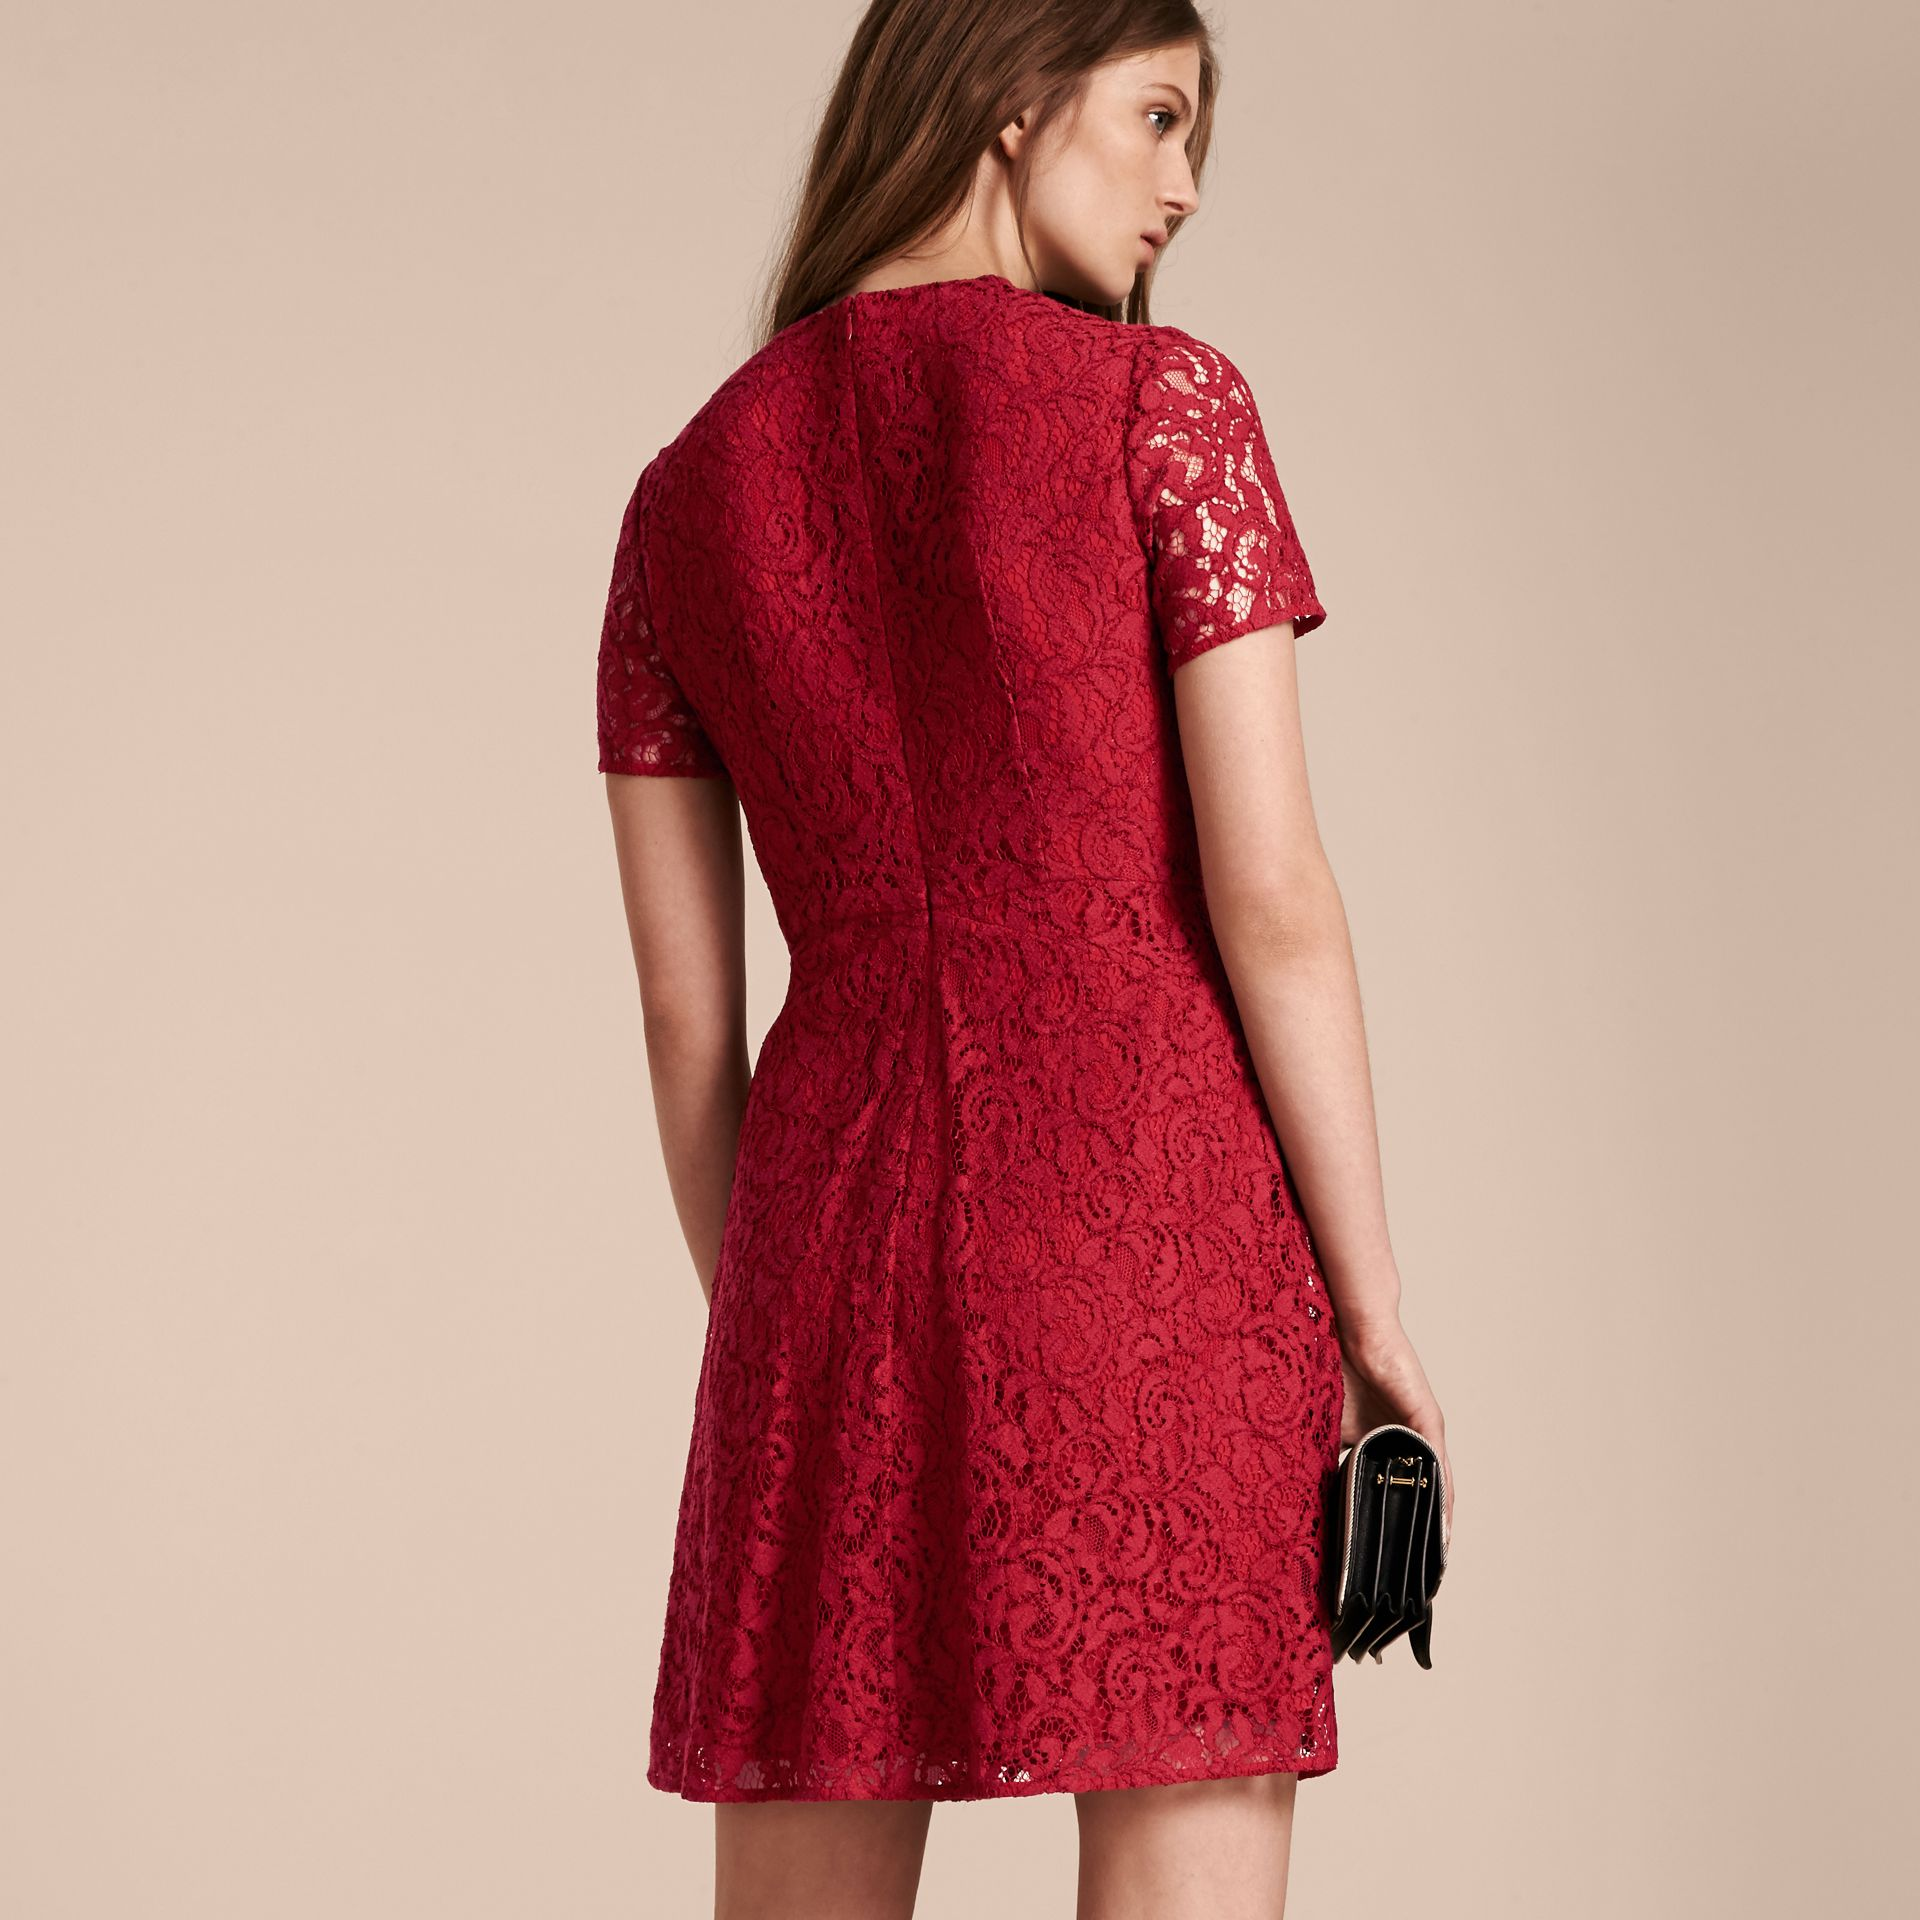 Parade red Fit-and-flare Dropped-waist Lace Dress Parade Red - gallery image 3